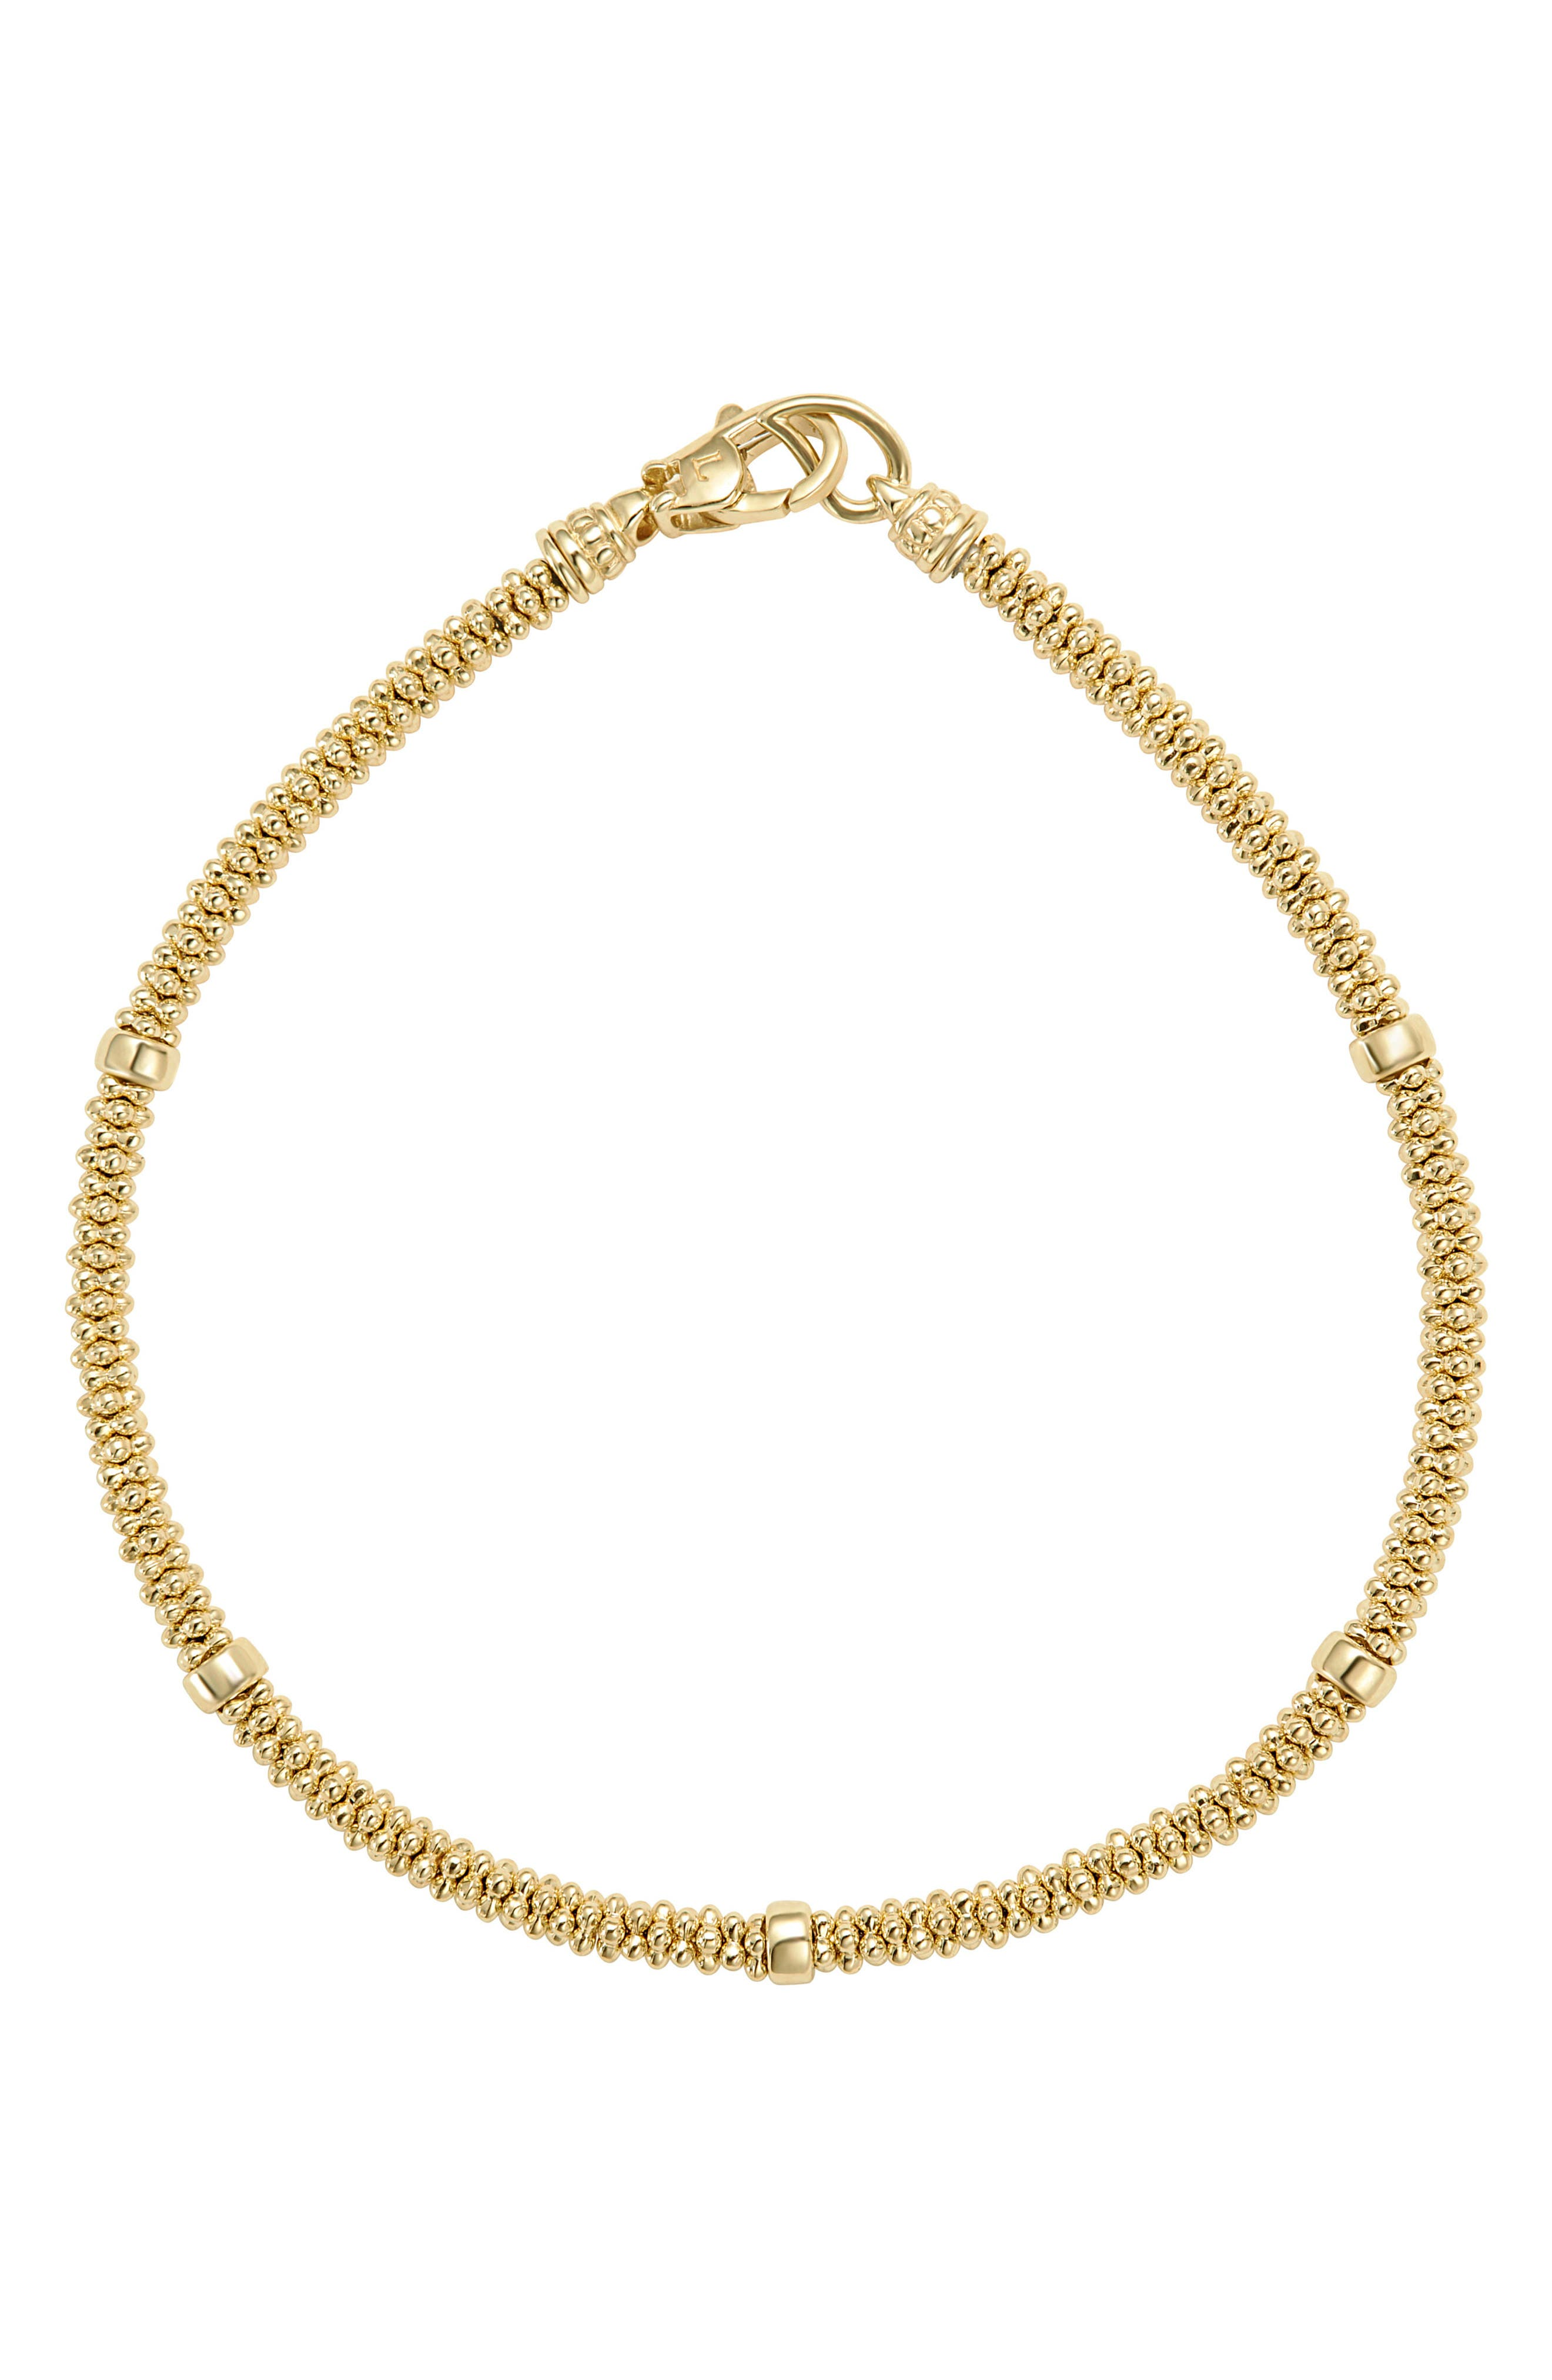 Caviar Gold Rope Bracelet,                             Main thumbnail 1, color,                             Gold